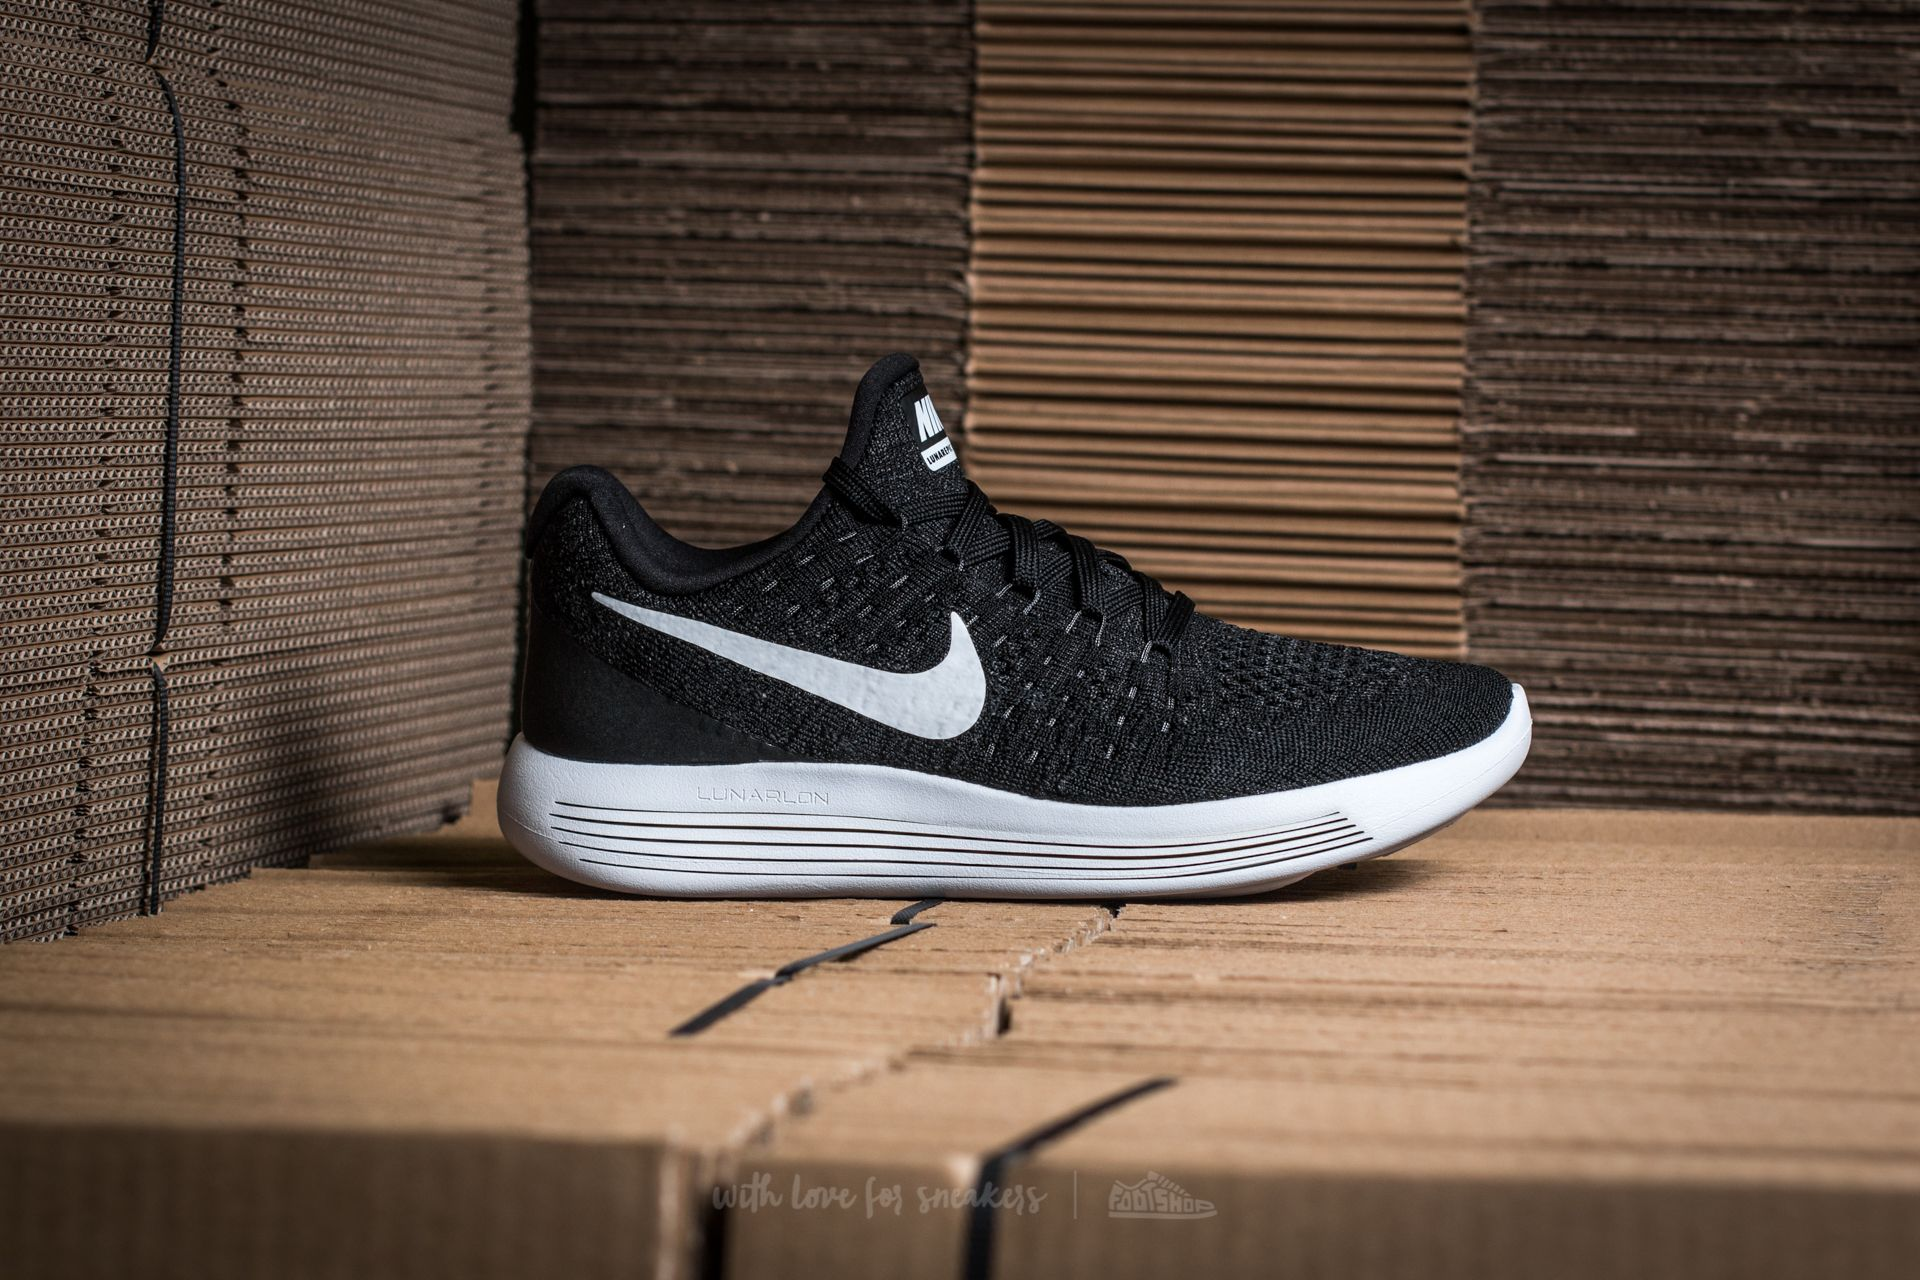 newest 72a70 22e08 NIke W Lunarepic Low Flyknit 2 Black/ White-Anthracite ...